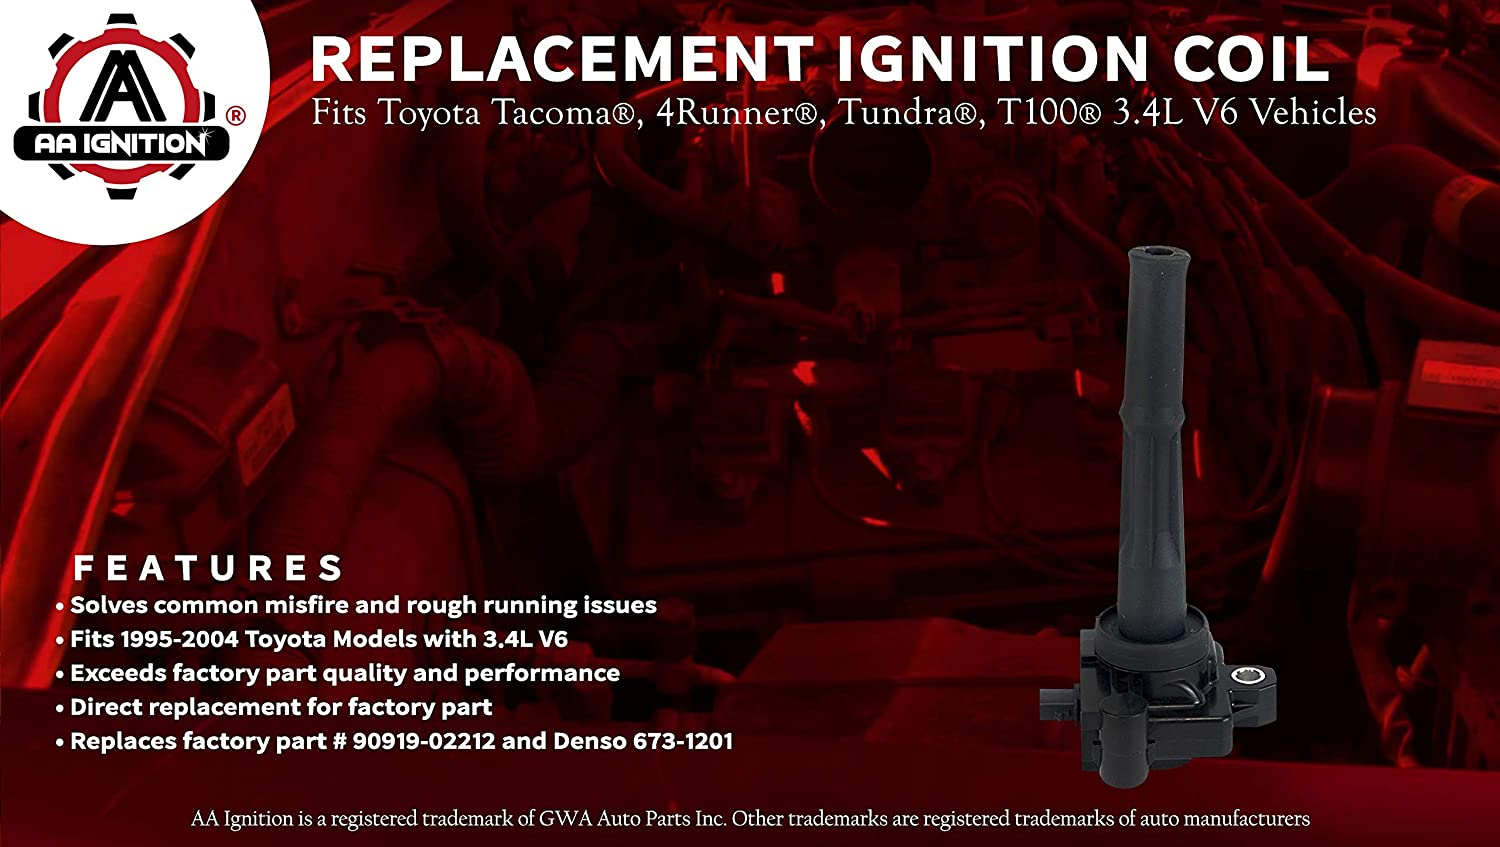 Ignition Coil Pack - Coil Pack Fits Toyota Tacoma, 4Runner, Tundra, T100  3 4L V6 Models - Replaces Part# 90919-02212 - Model Years 95, 96, 97, 98,  99,